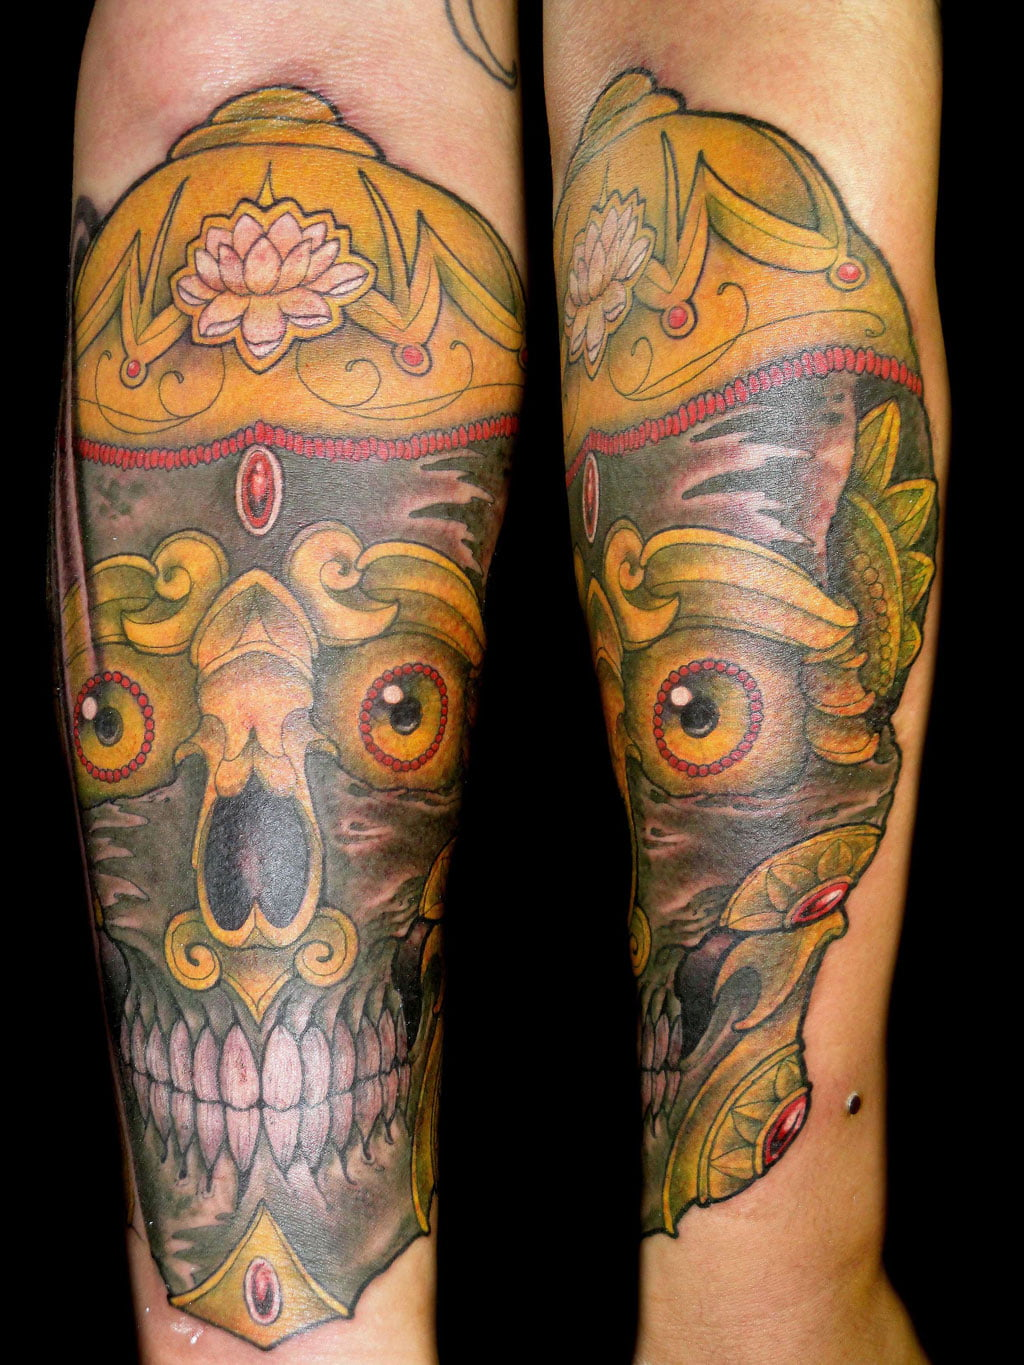 Tibetan Skull Tattoo Meaning